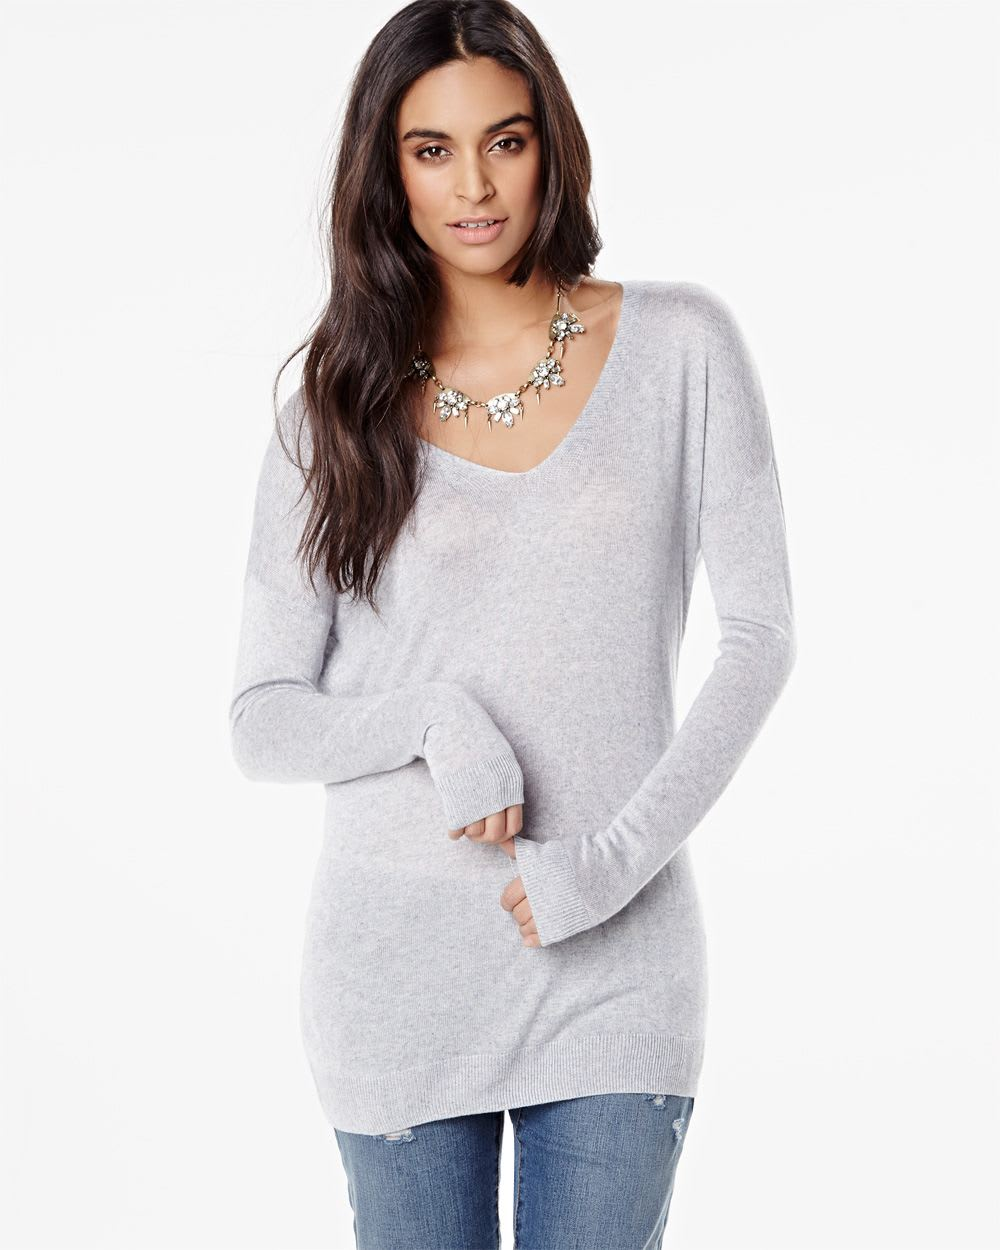 Shop for long sweater wrap online at Target. Free shipping on purchases over $35 and save 5% every day with your Target REDcard.